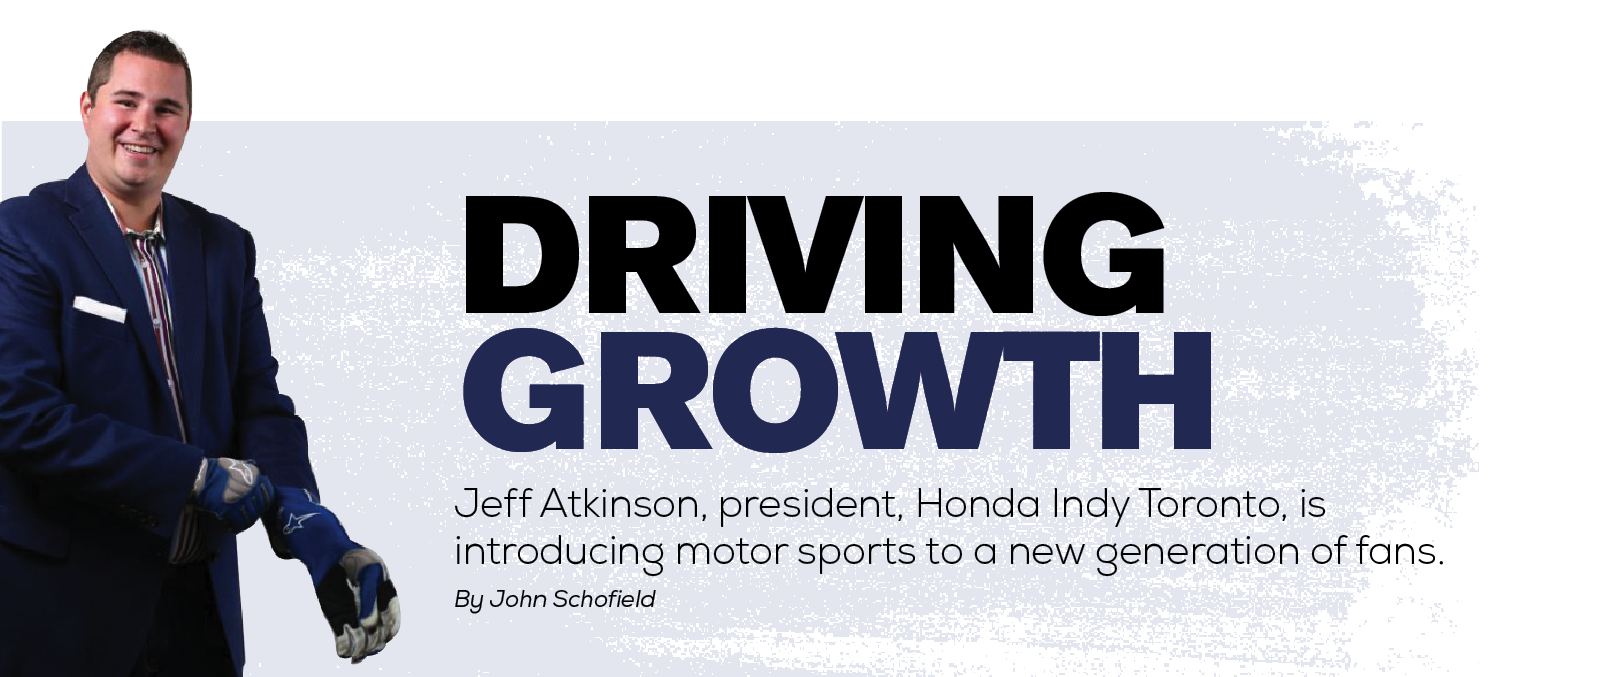 Driving Growth - Jeff Atkinson